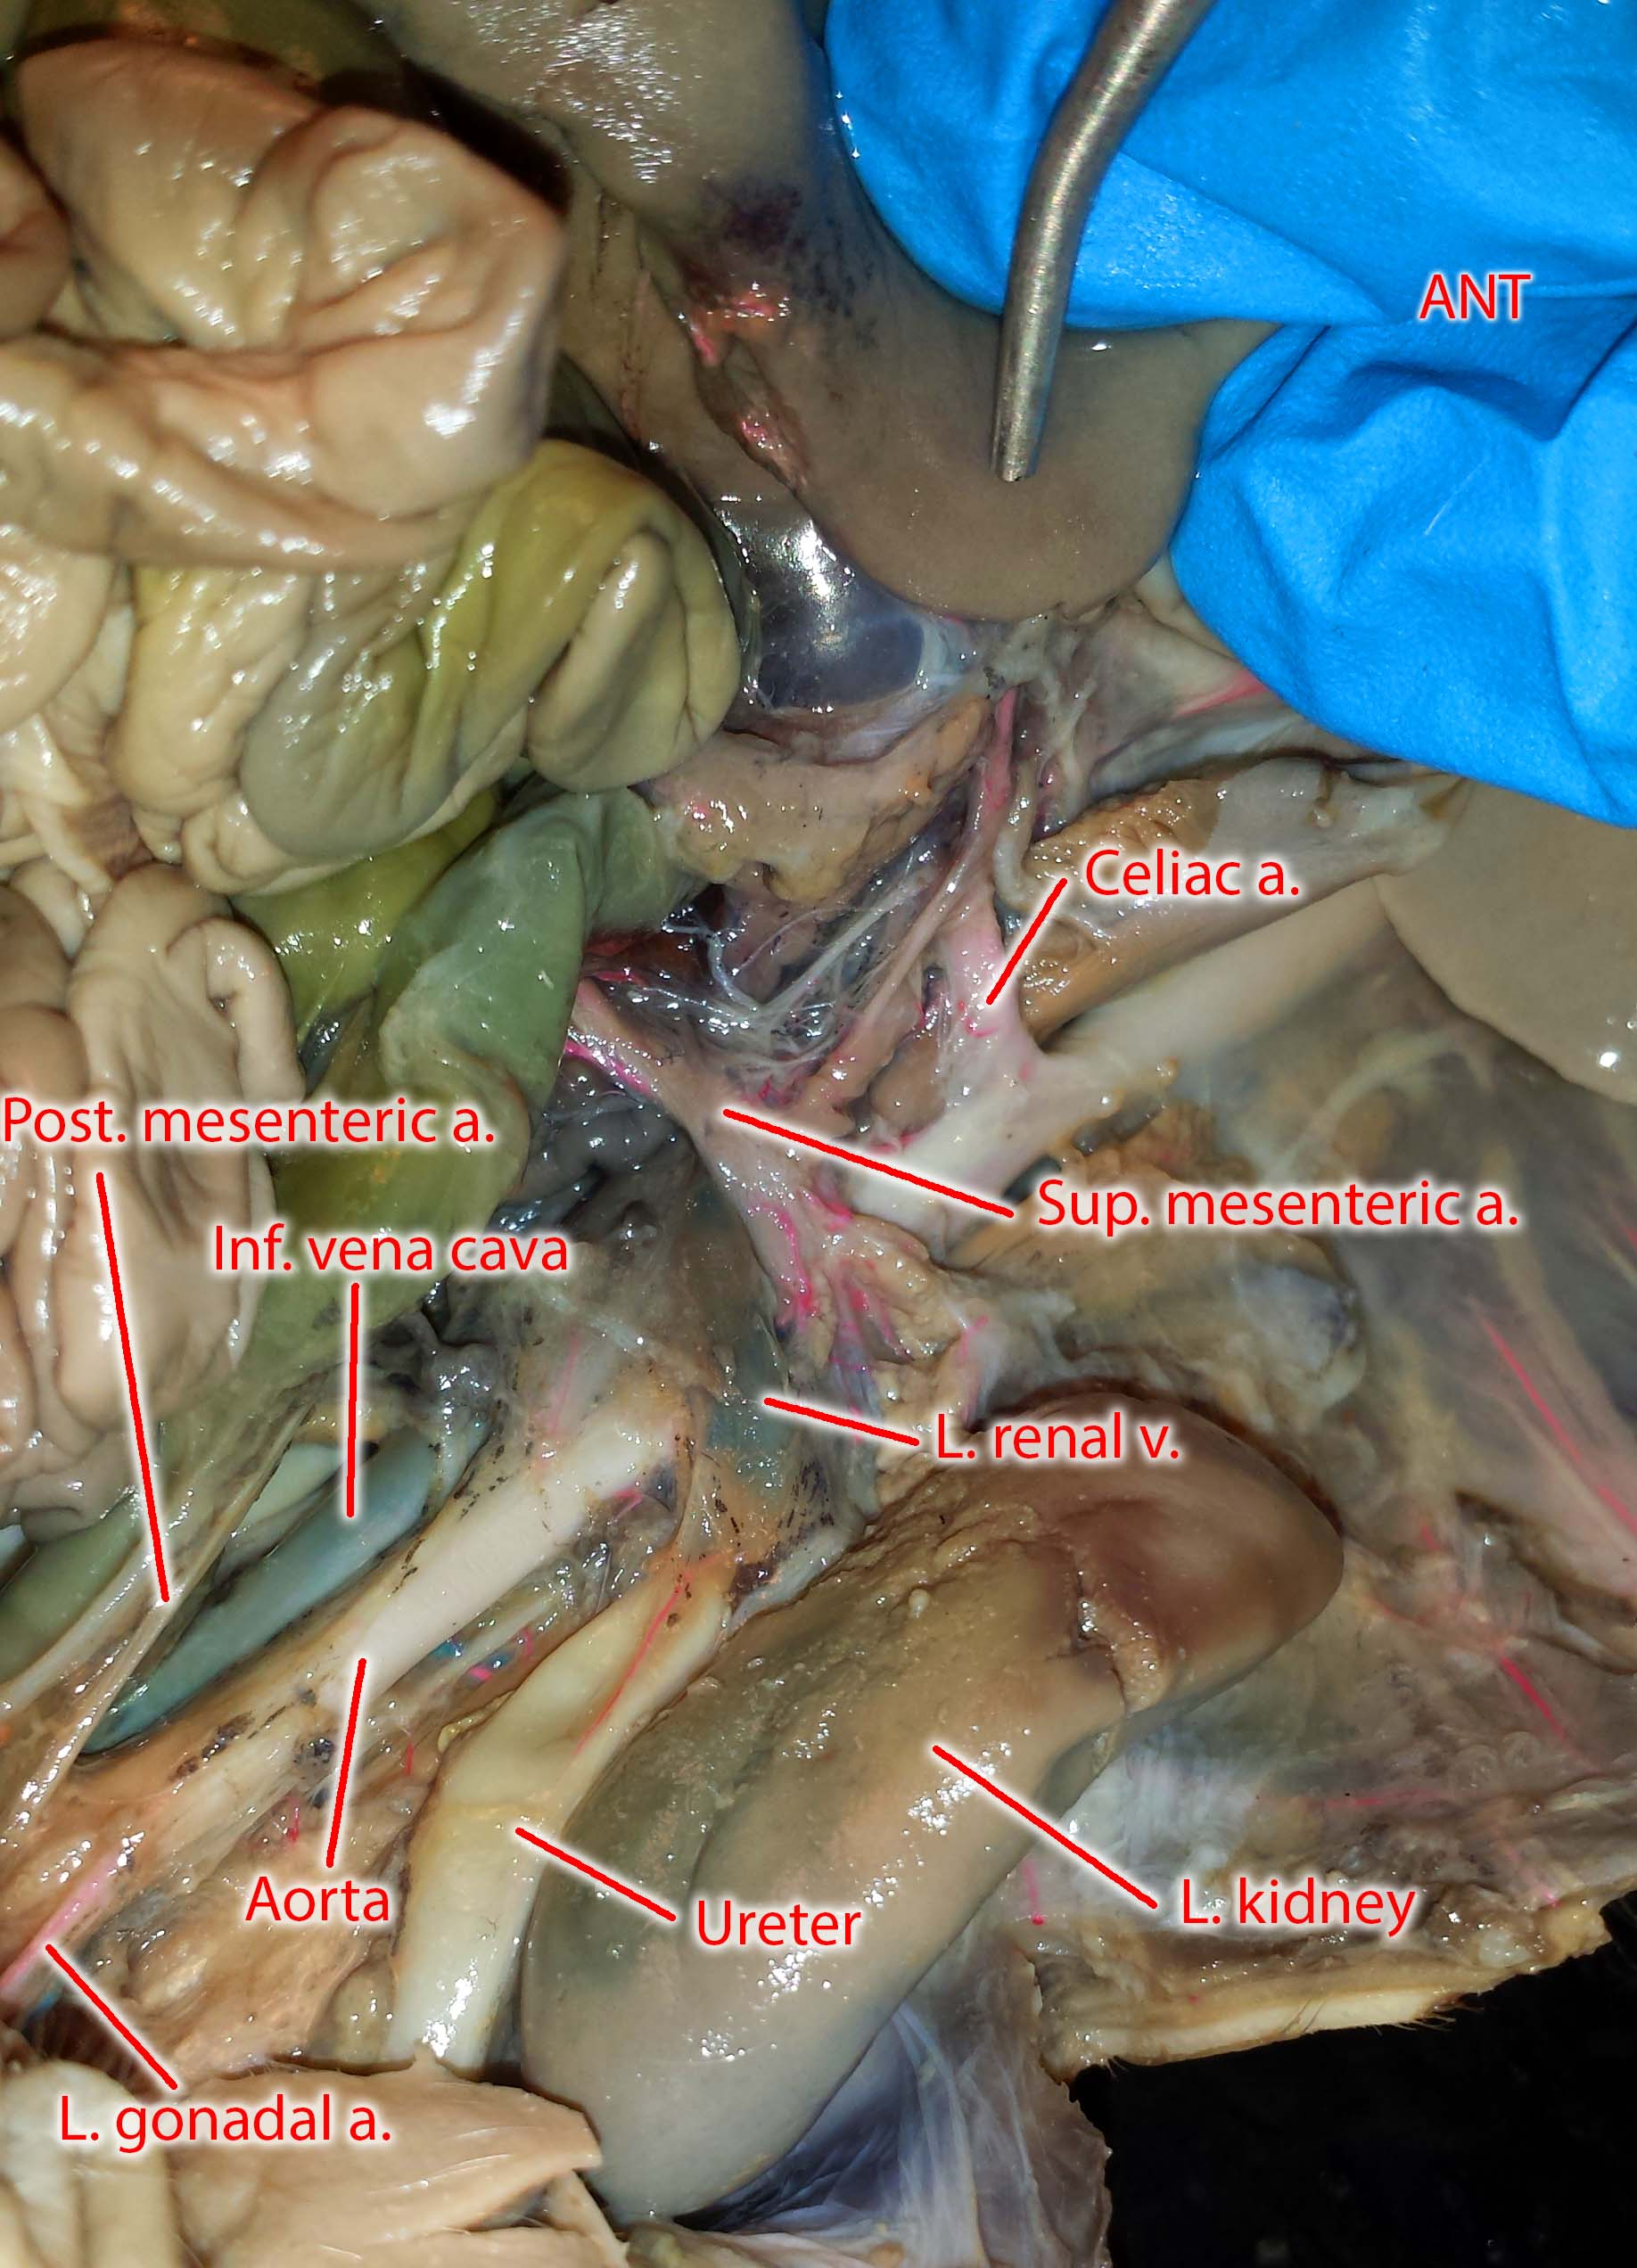 Photographs of the vessels of the fetal pig ccuart Choice Image